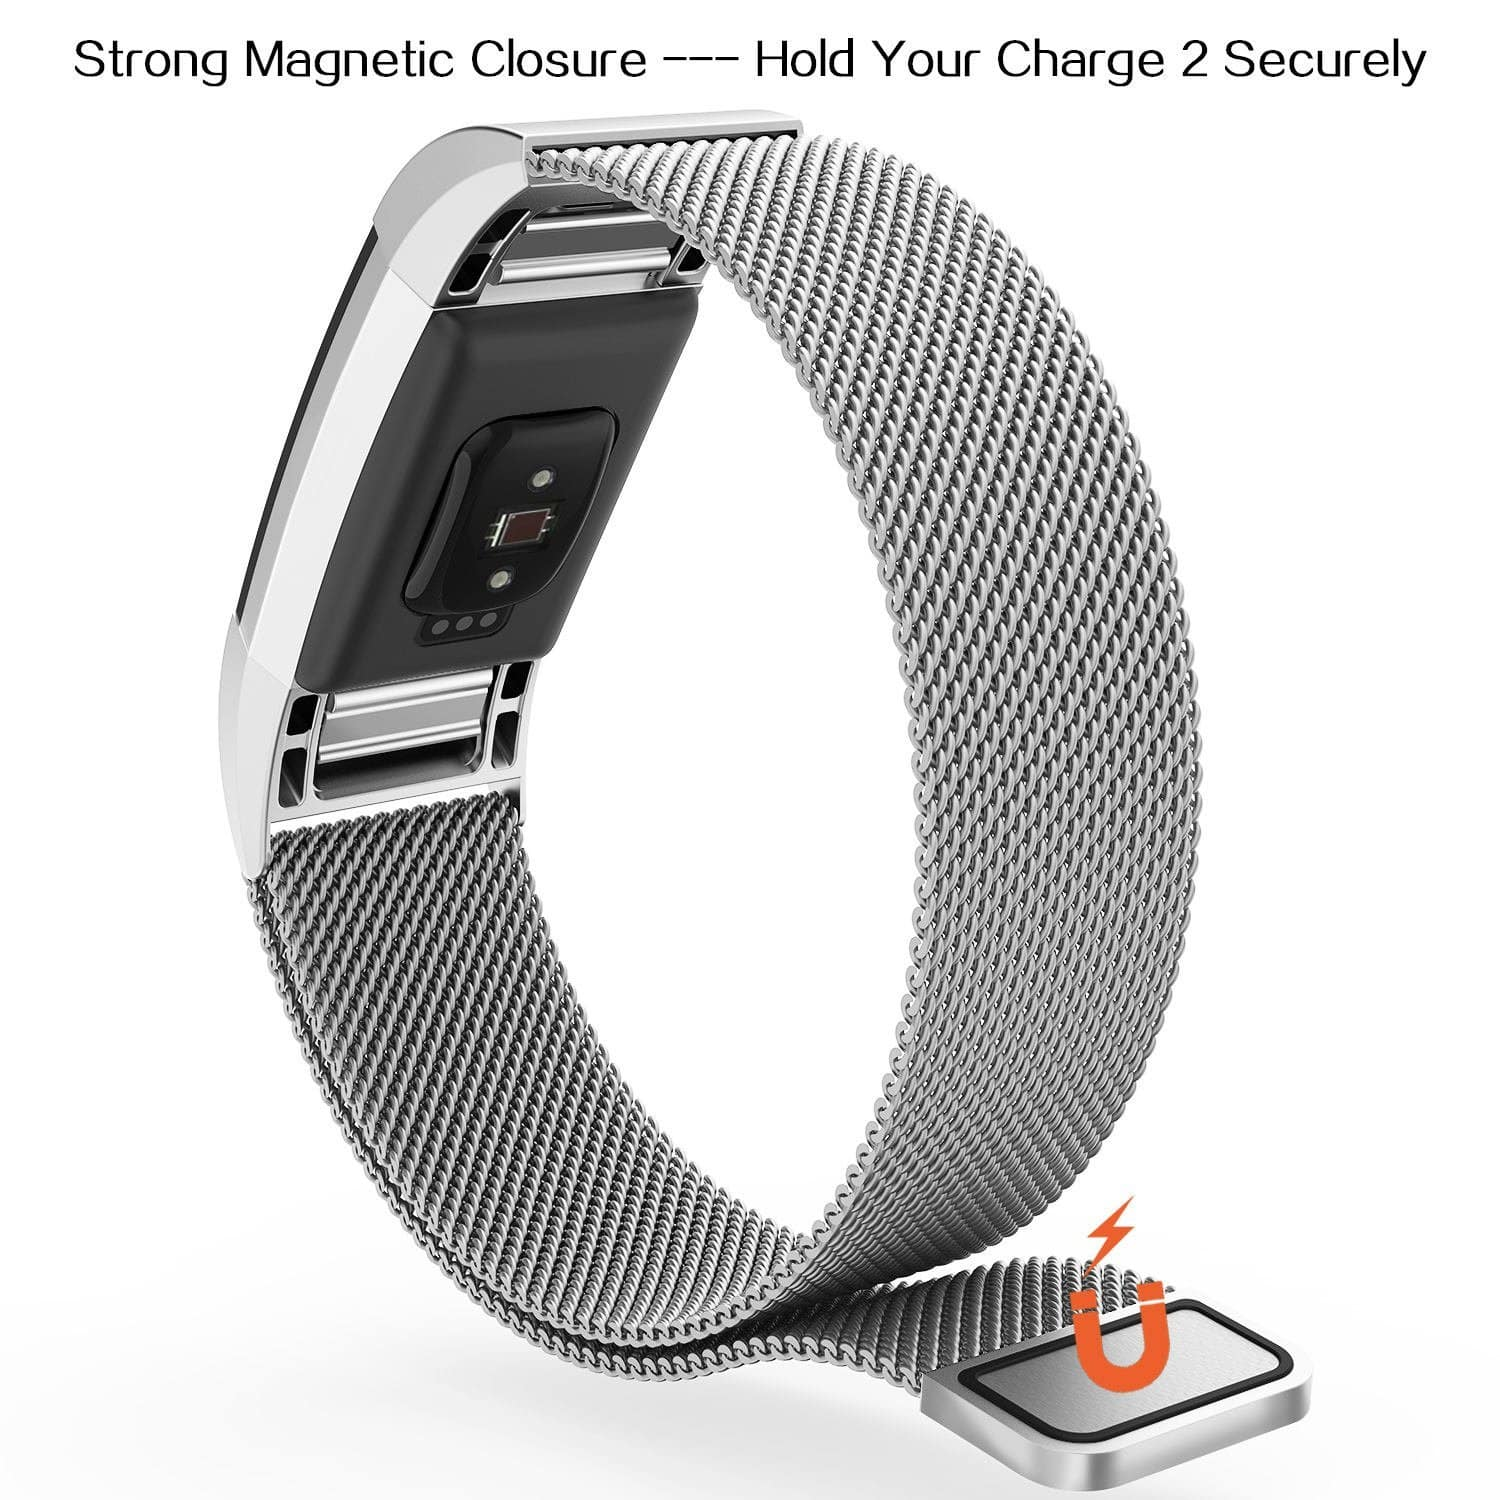 Fitbit Charge 2 Stainless Steel Band $4.98/$5.98 @ Amazon